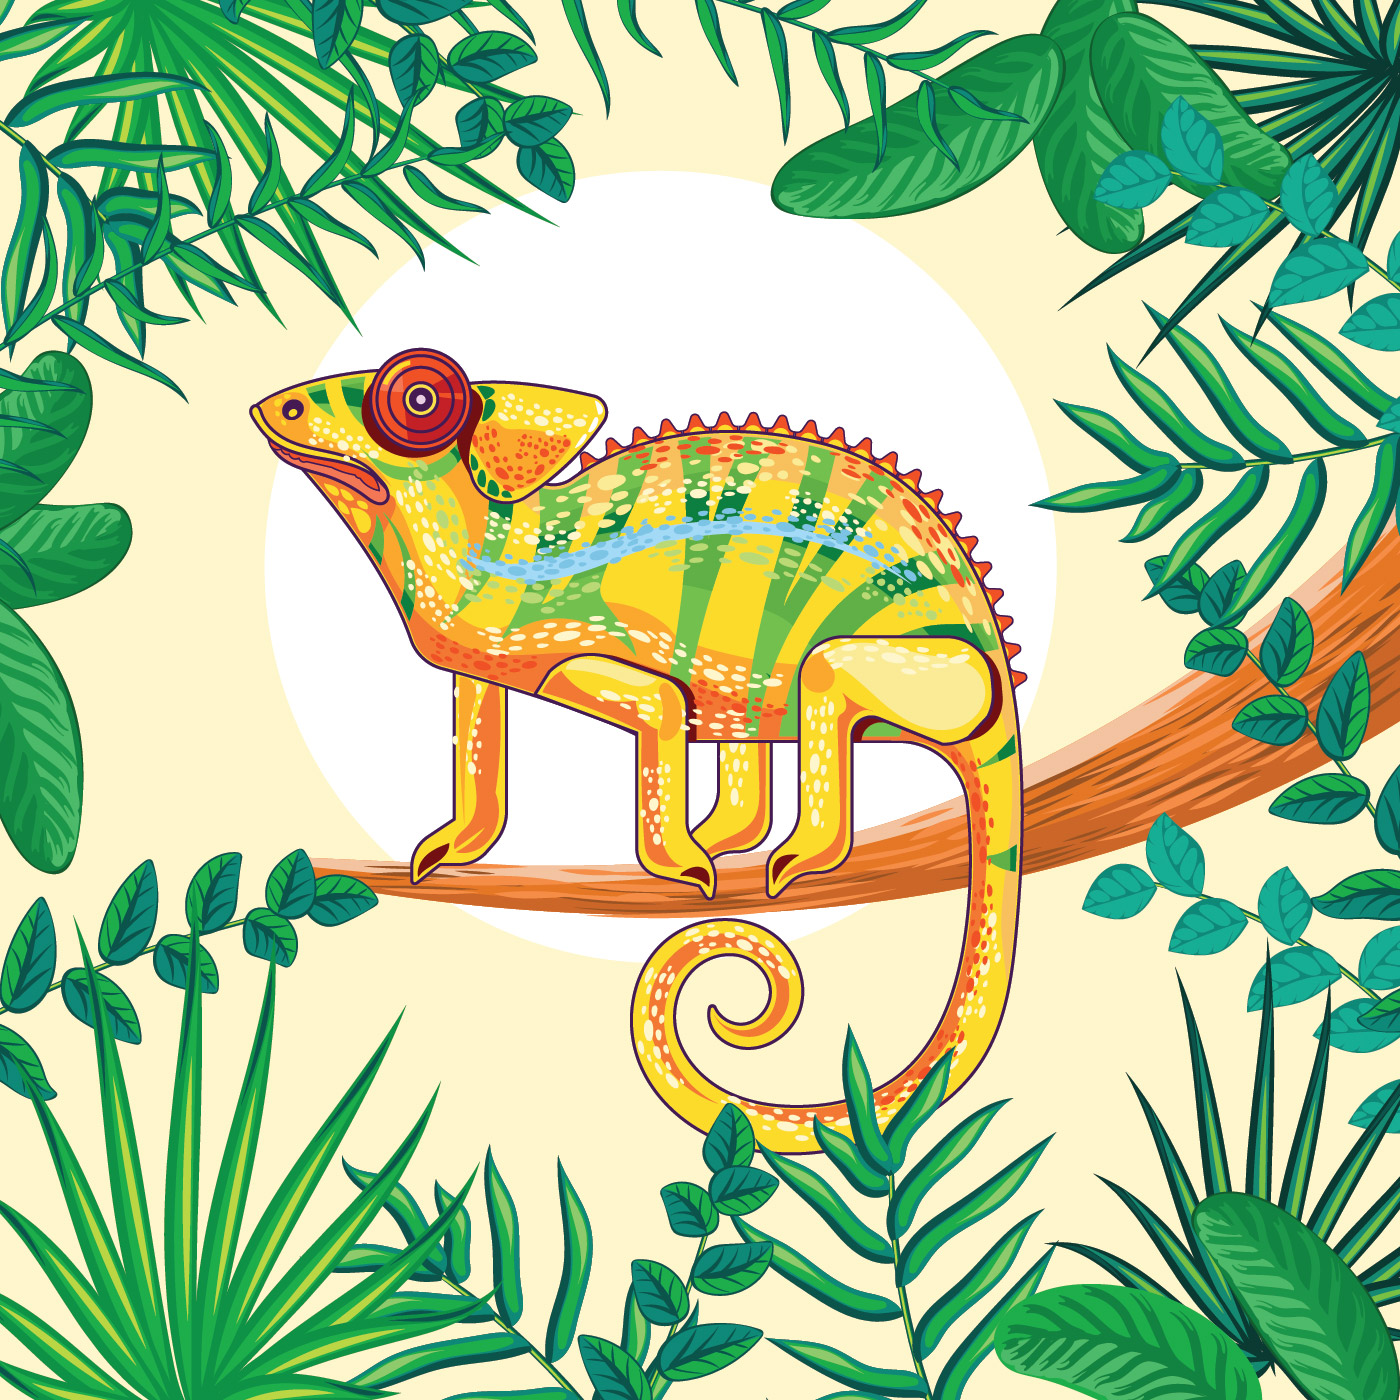 Chameleon Fantasy Yellow Colors With Tropical Jungle